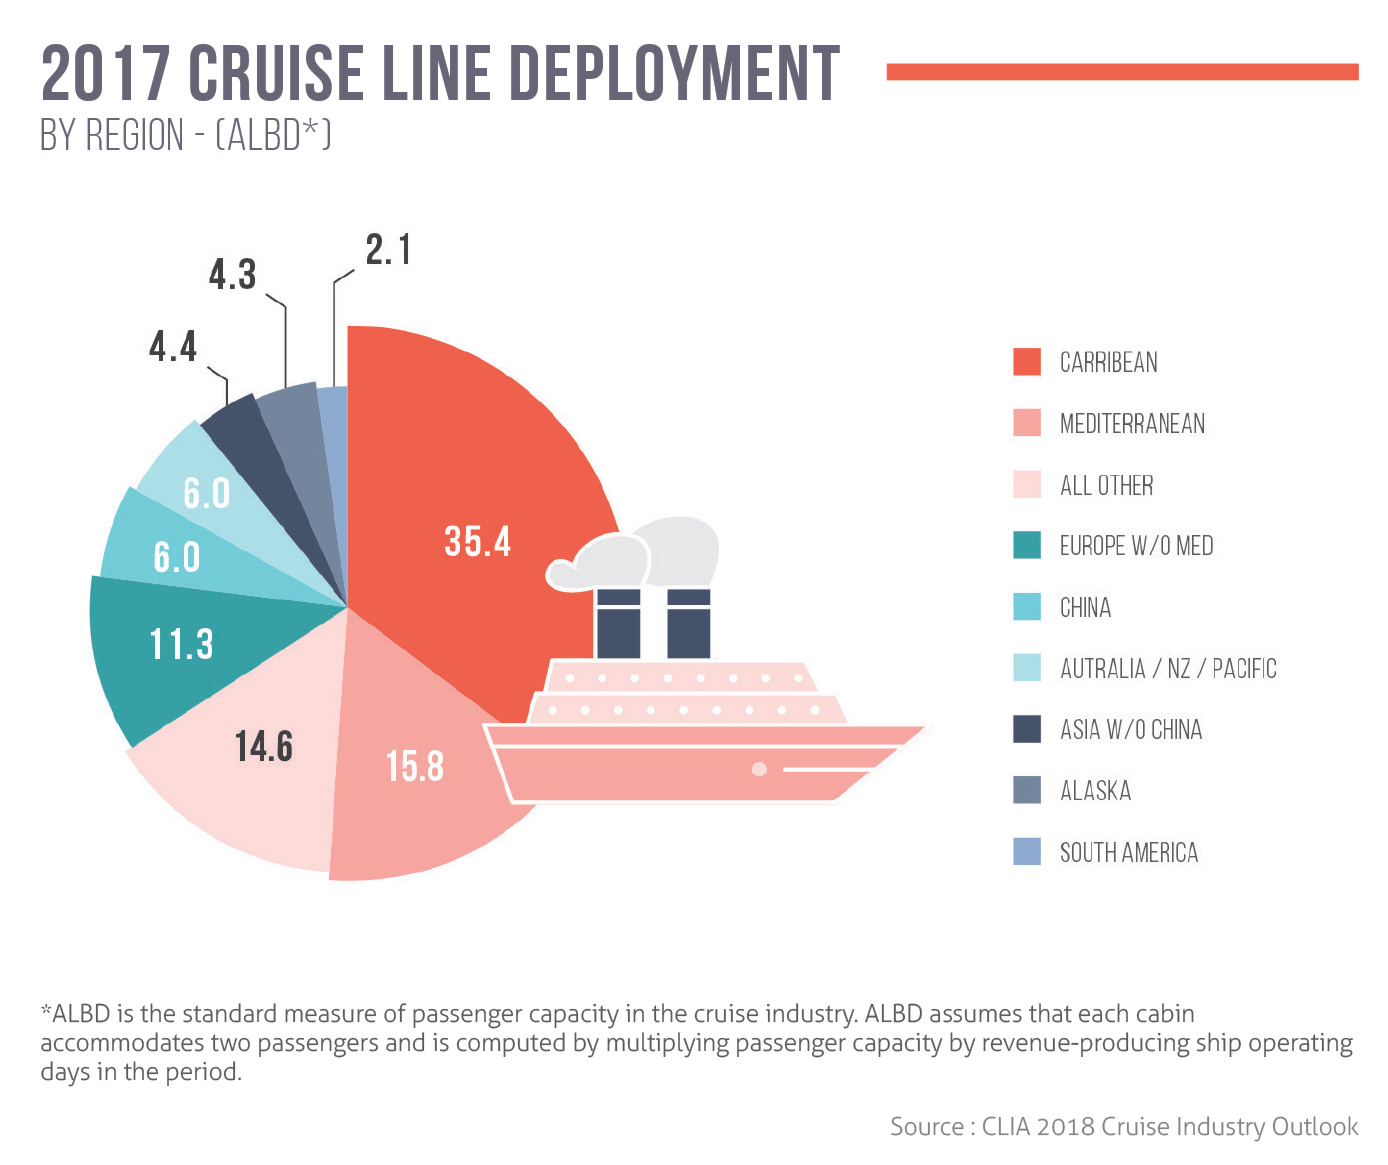 2017 cruise line deployment by region (ALBD)